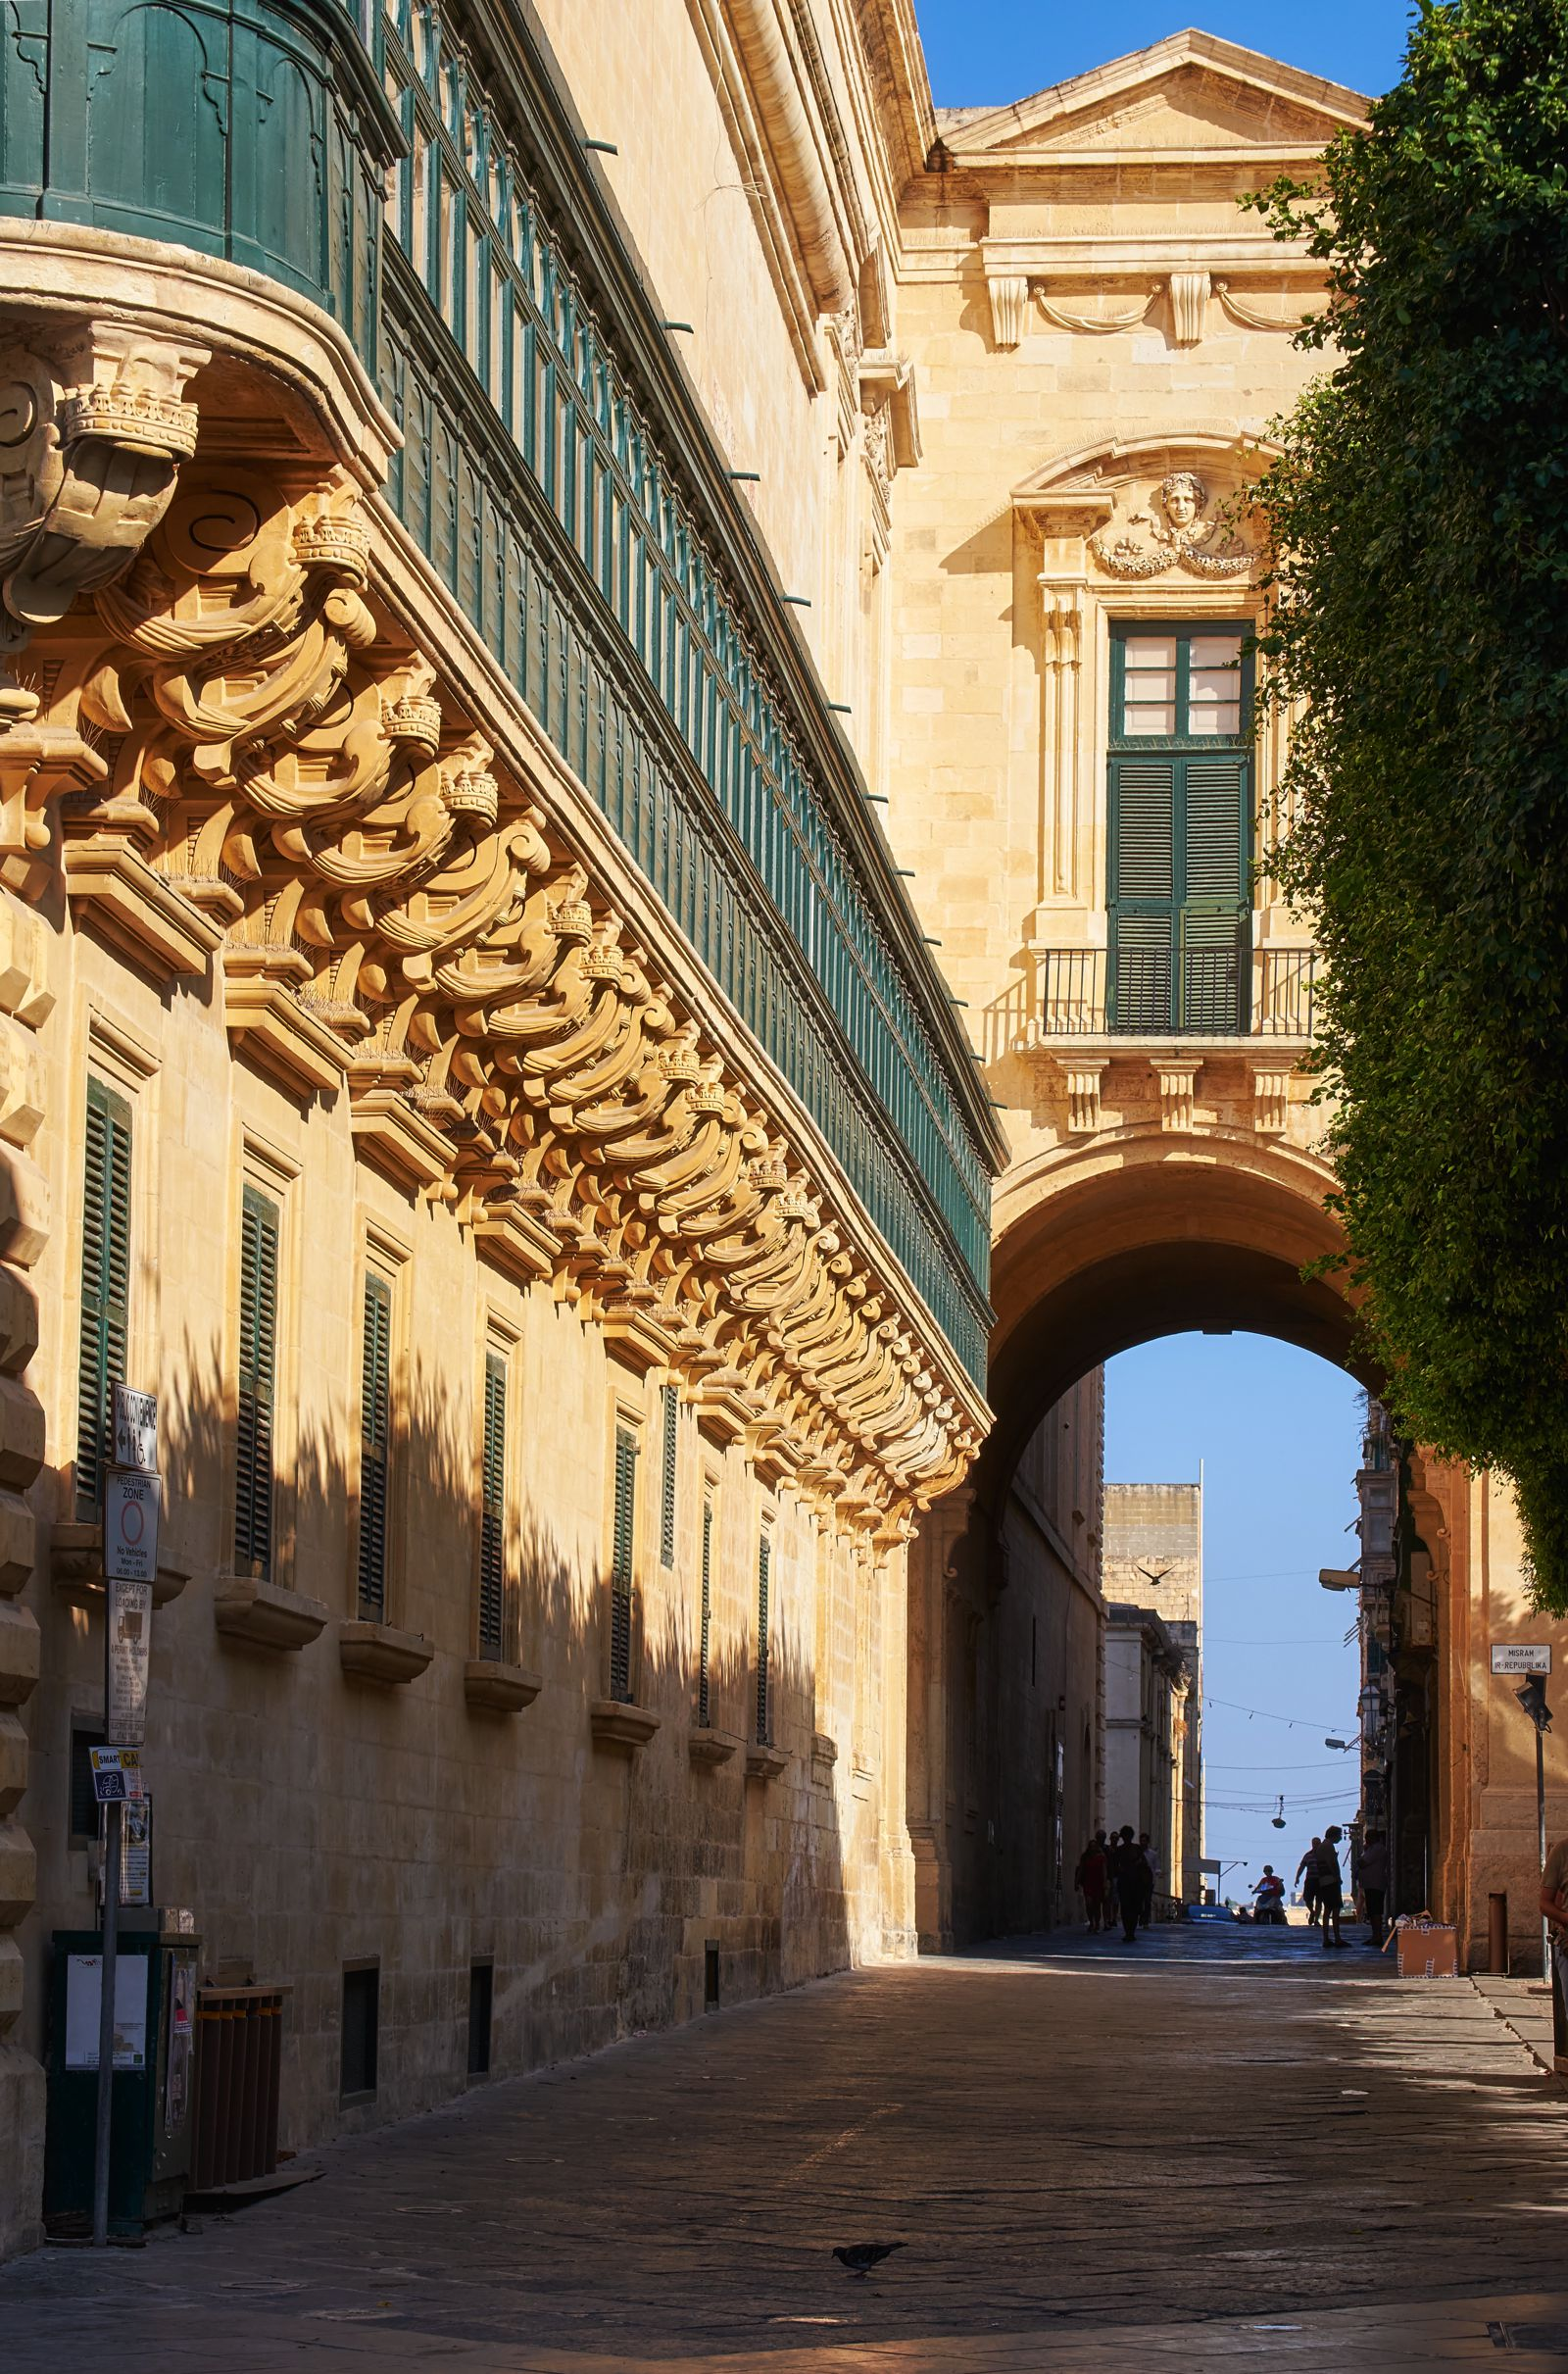 18 Incredible Things You Have To See And Do In Malta And Gozo (11)